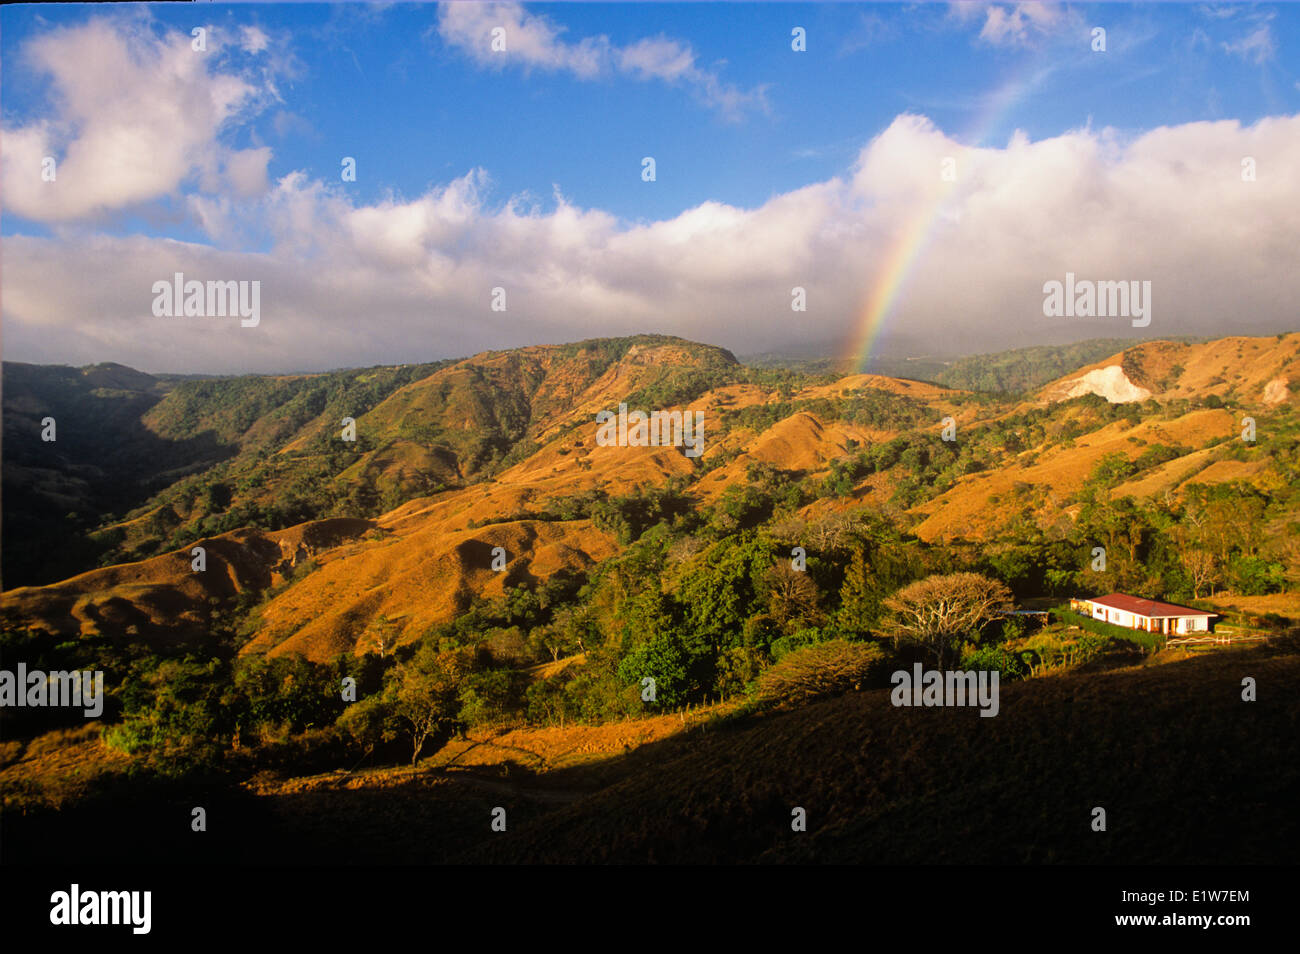 Rainbow and house, Cordillera de Tilaran, Guanacaste, Costa Rica - Stock Image